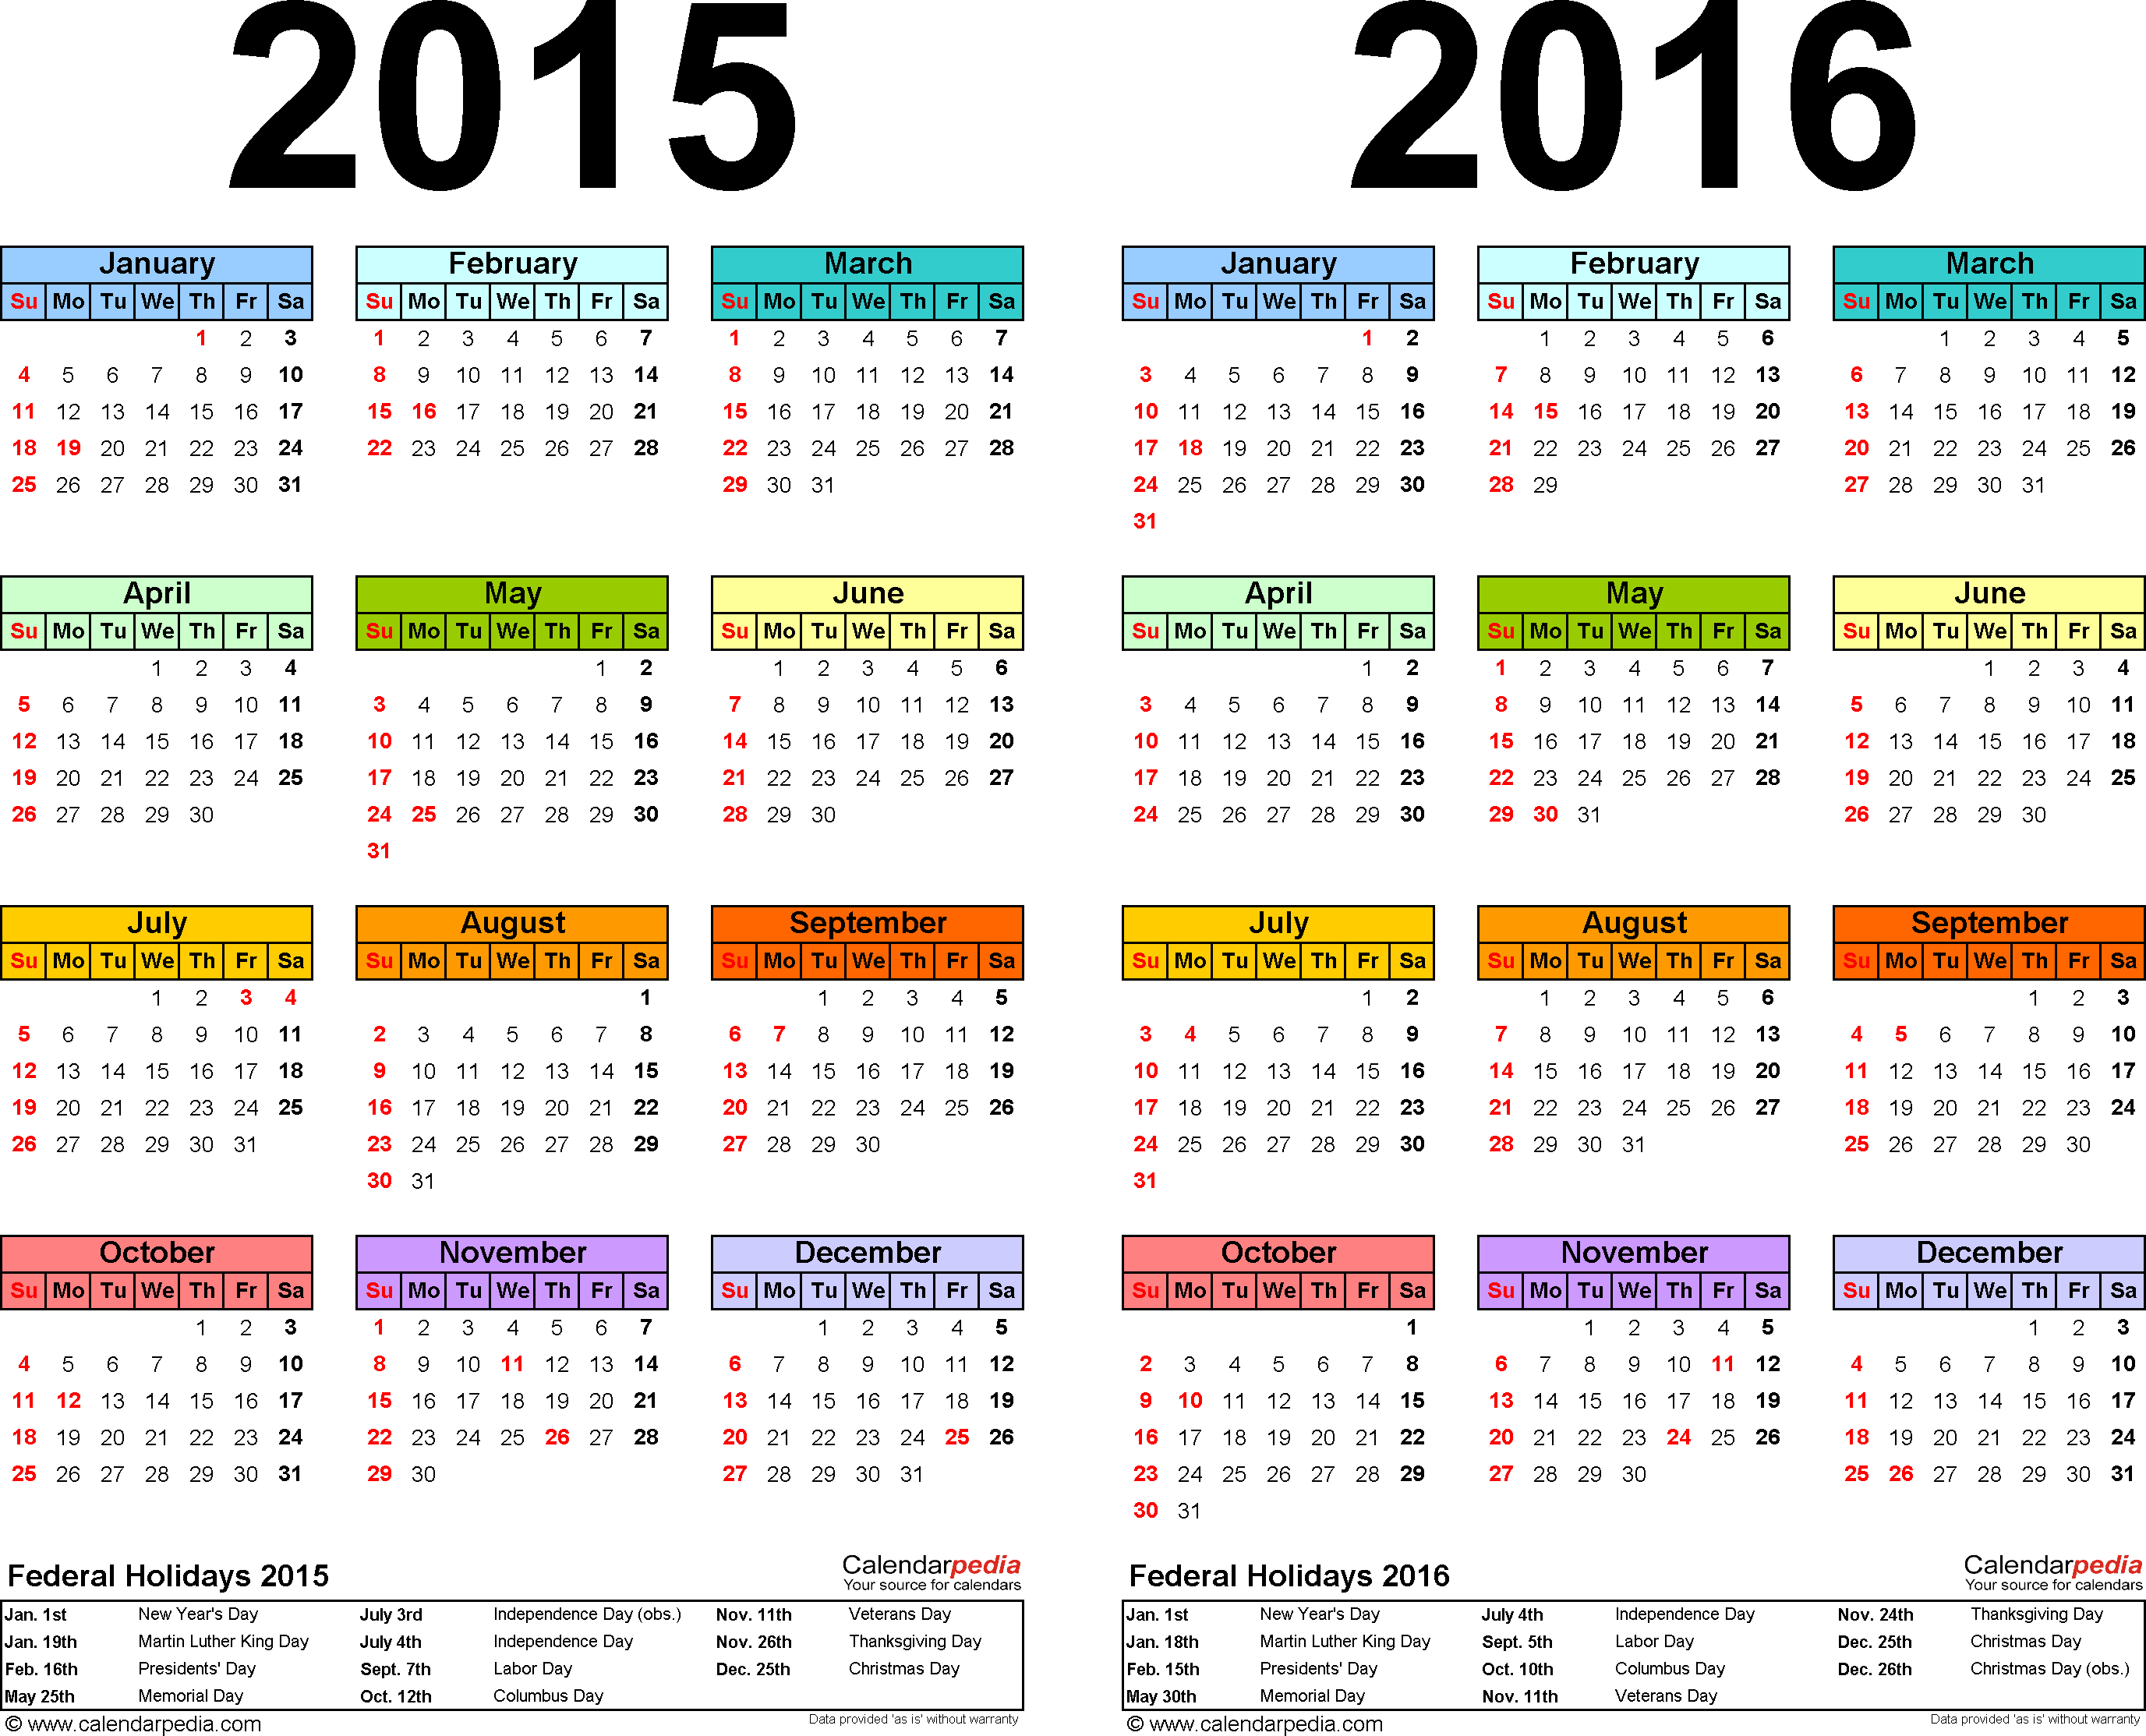 Download Template 2: PDF template for two year calendar 2015/2016 (landscape orientation, 1 page, years side by side, multi-colored)